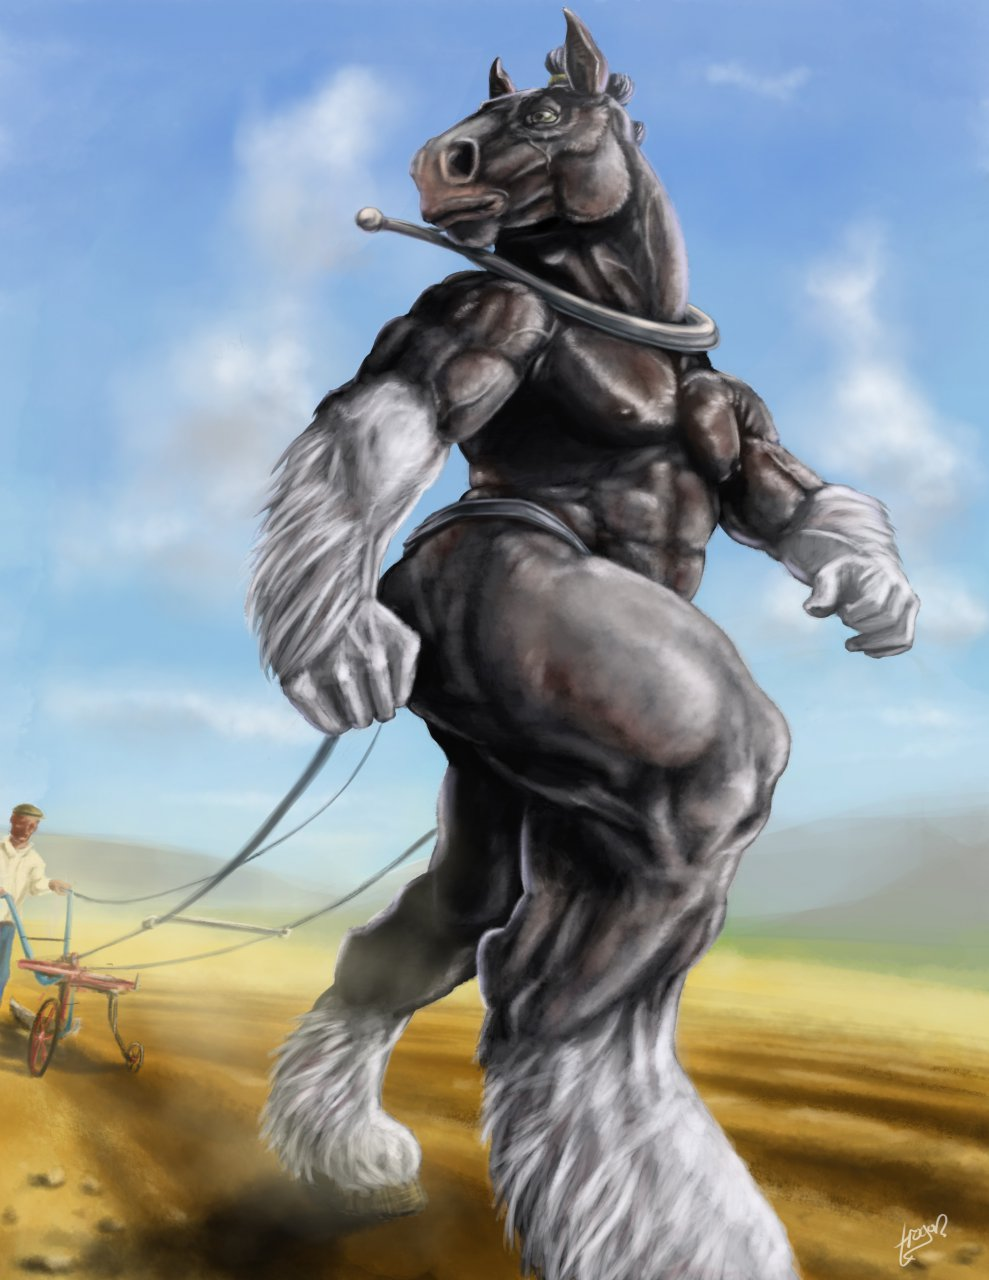 e926 2014 5_fingers abs anthro biceps biped black_fur black_nipples blue_sky brown_hooves clothed clothing clydesdale day detailed_background digital_media_(artwork) draft_horse duo equine feathering field fur hi_res hooves horse human humanoid_hands looking_away male mammal multicolored_fur muscular muscular_male nipples nude outside pecs rannik signature sky snout solo_focus trogan two_tone_fur vein veiny_muscles walking white_fur